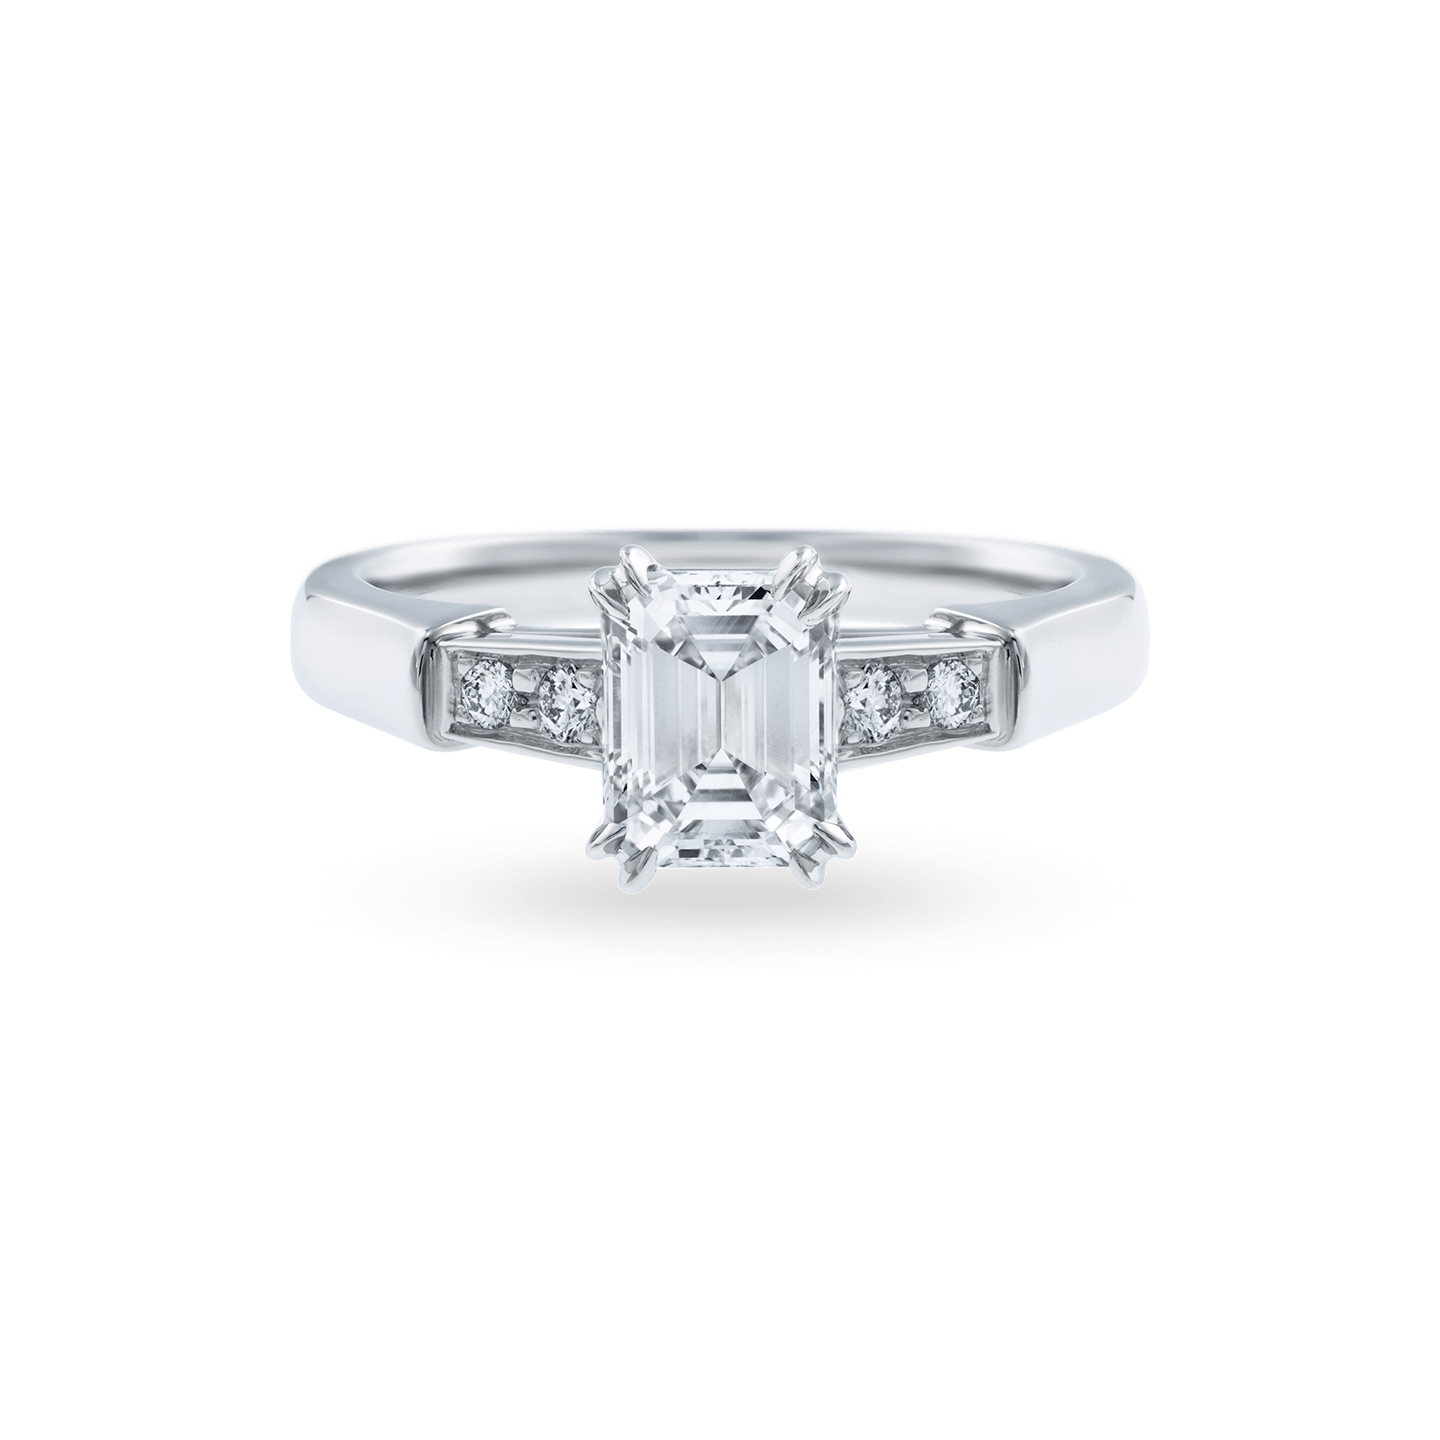 Tryst Emerald-Cut Diamond Engagement Ring, Product Image 1